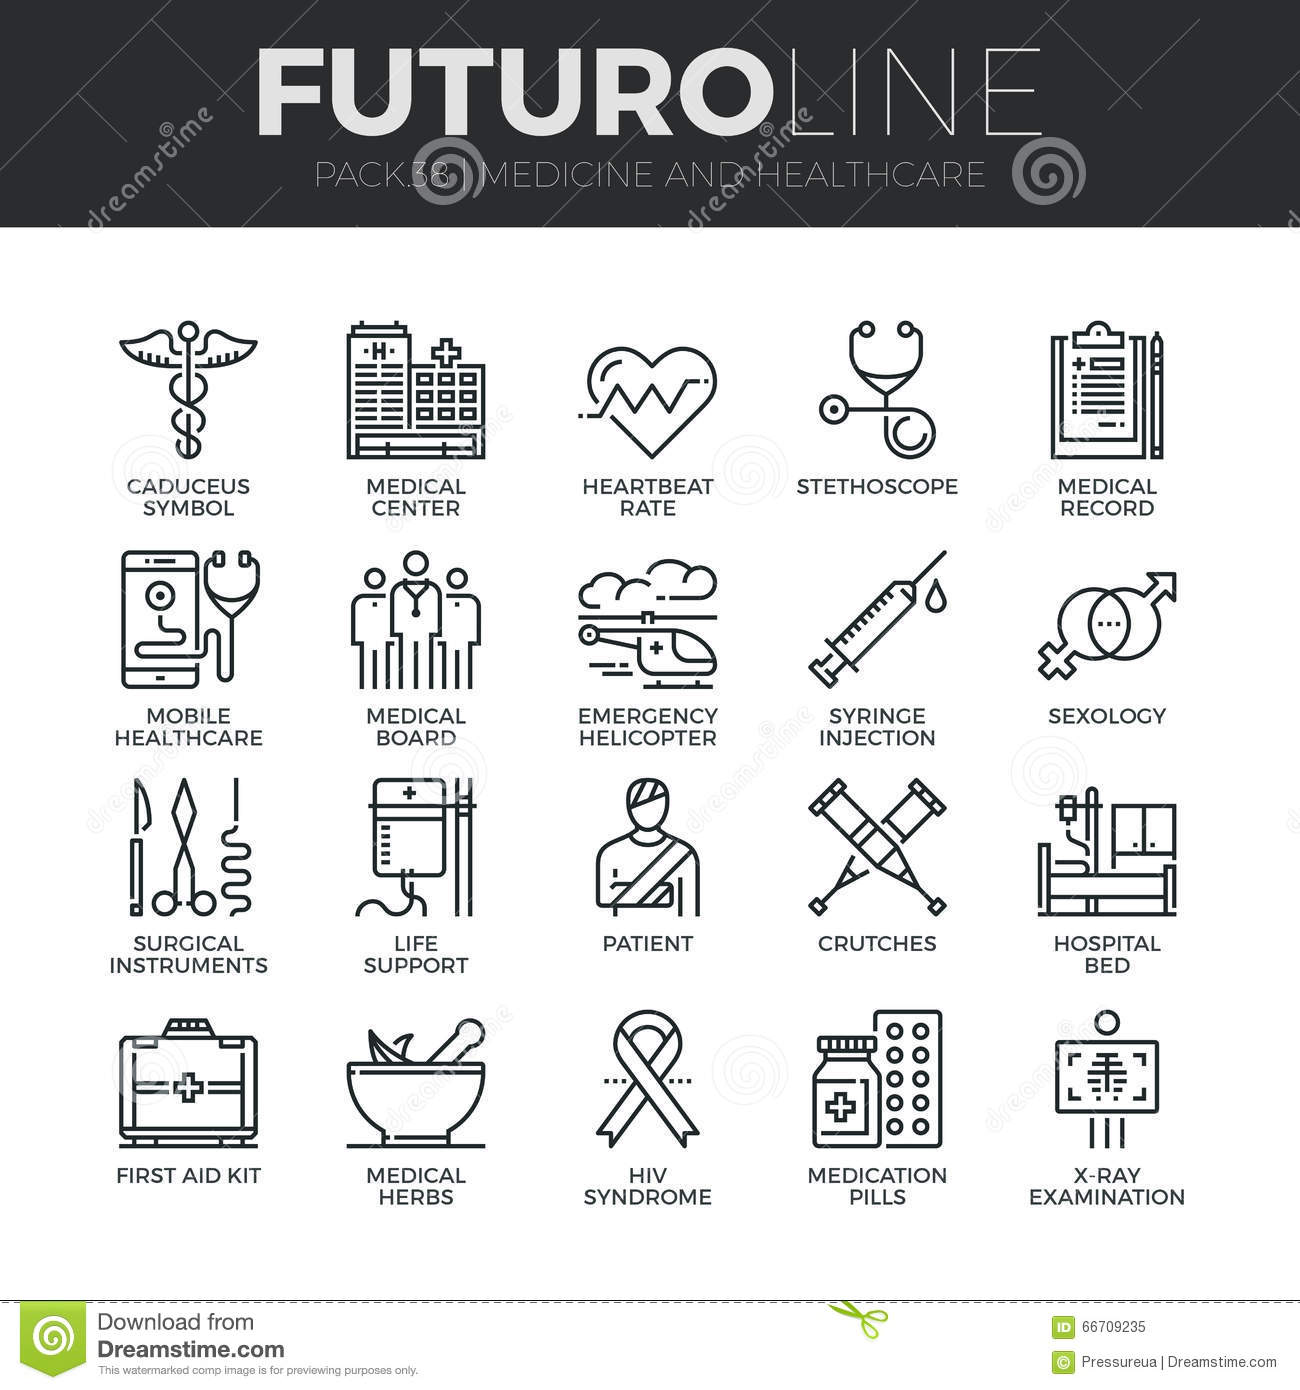 Icons set premium quality of healthcare professionals and medical medicine and healthcare futuro line icons set royalty free stock photo biocorpaavc Choice Image